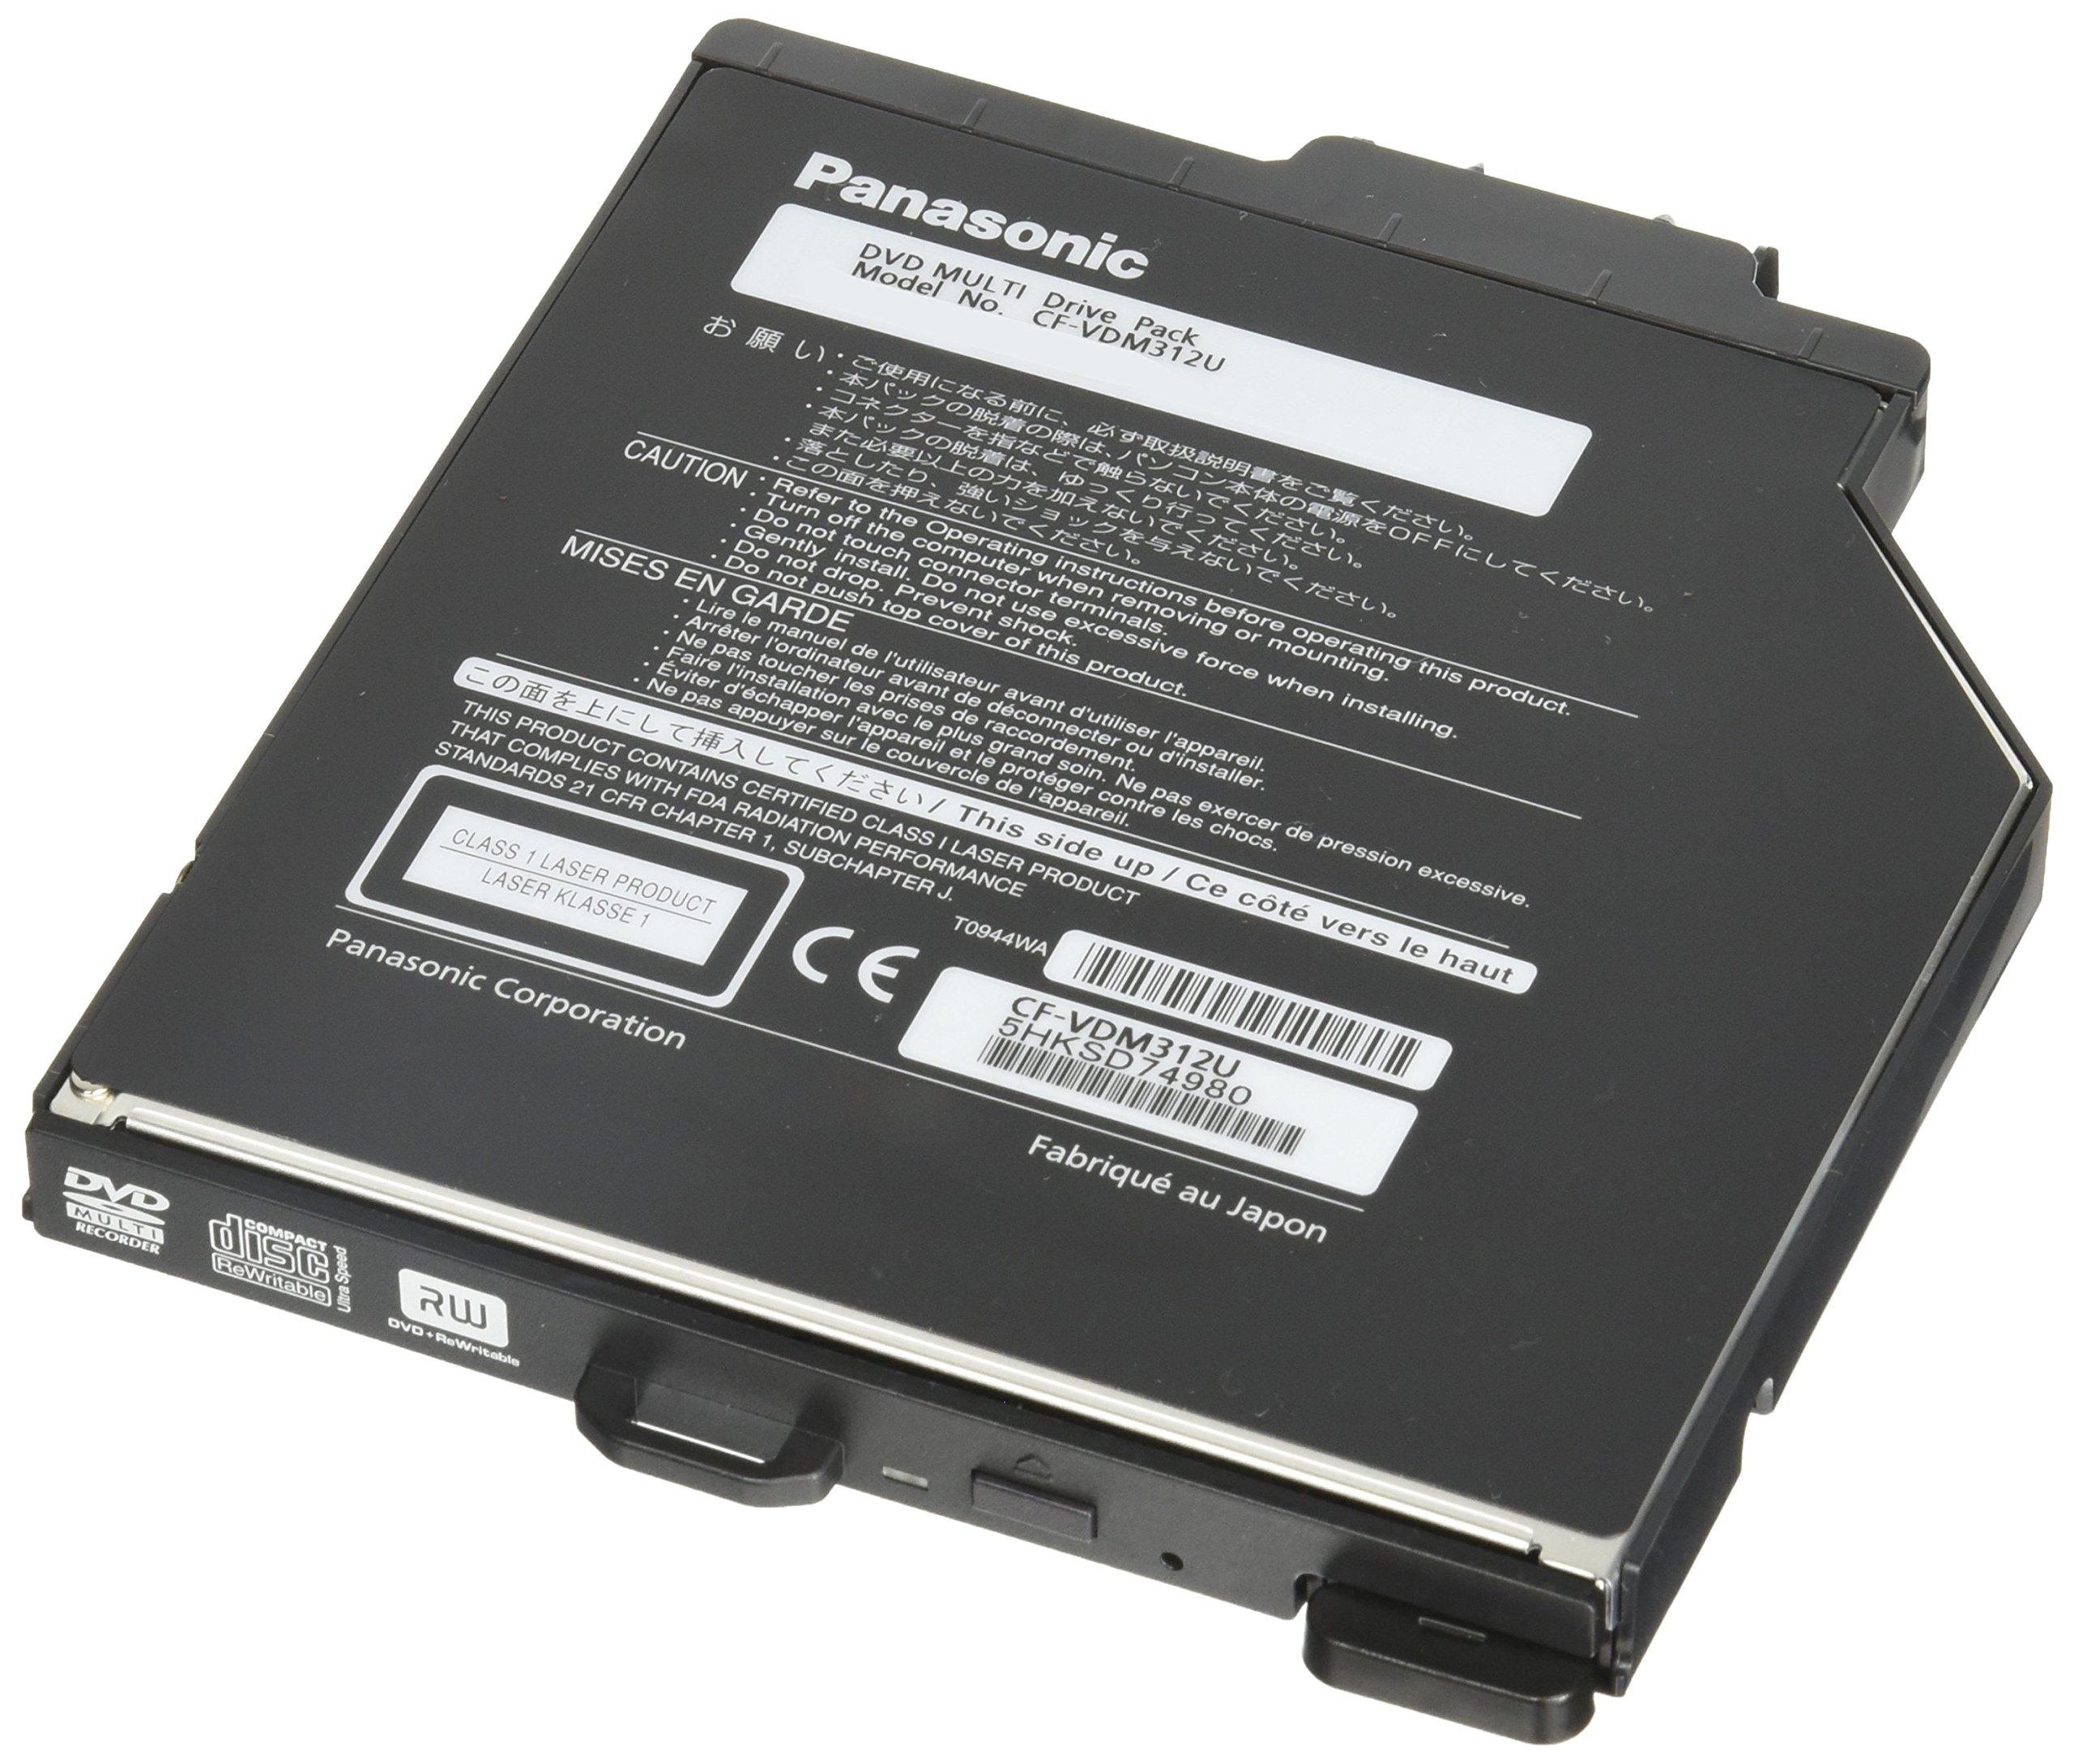 Panasonic DVD RW/DVD-RAM Internal Optical Drive CF-VDM312U